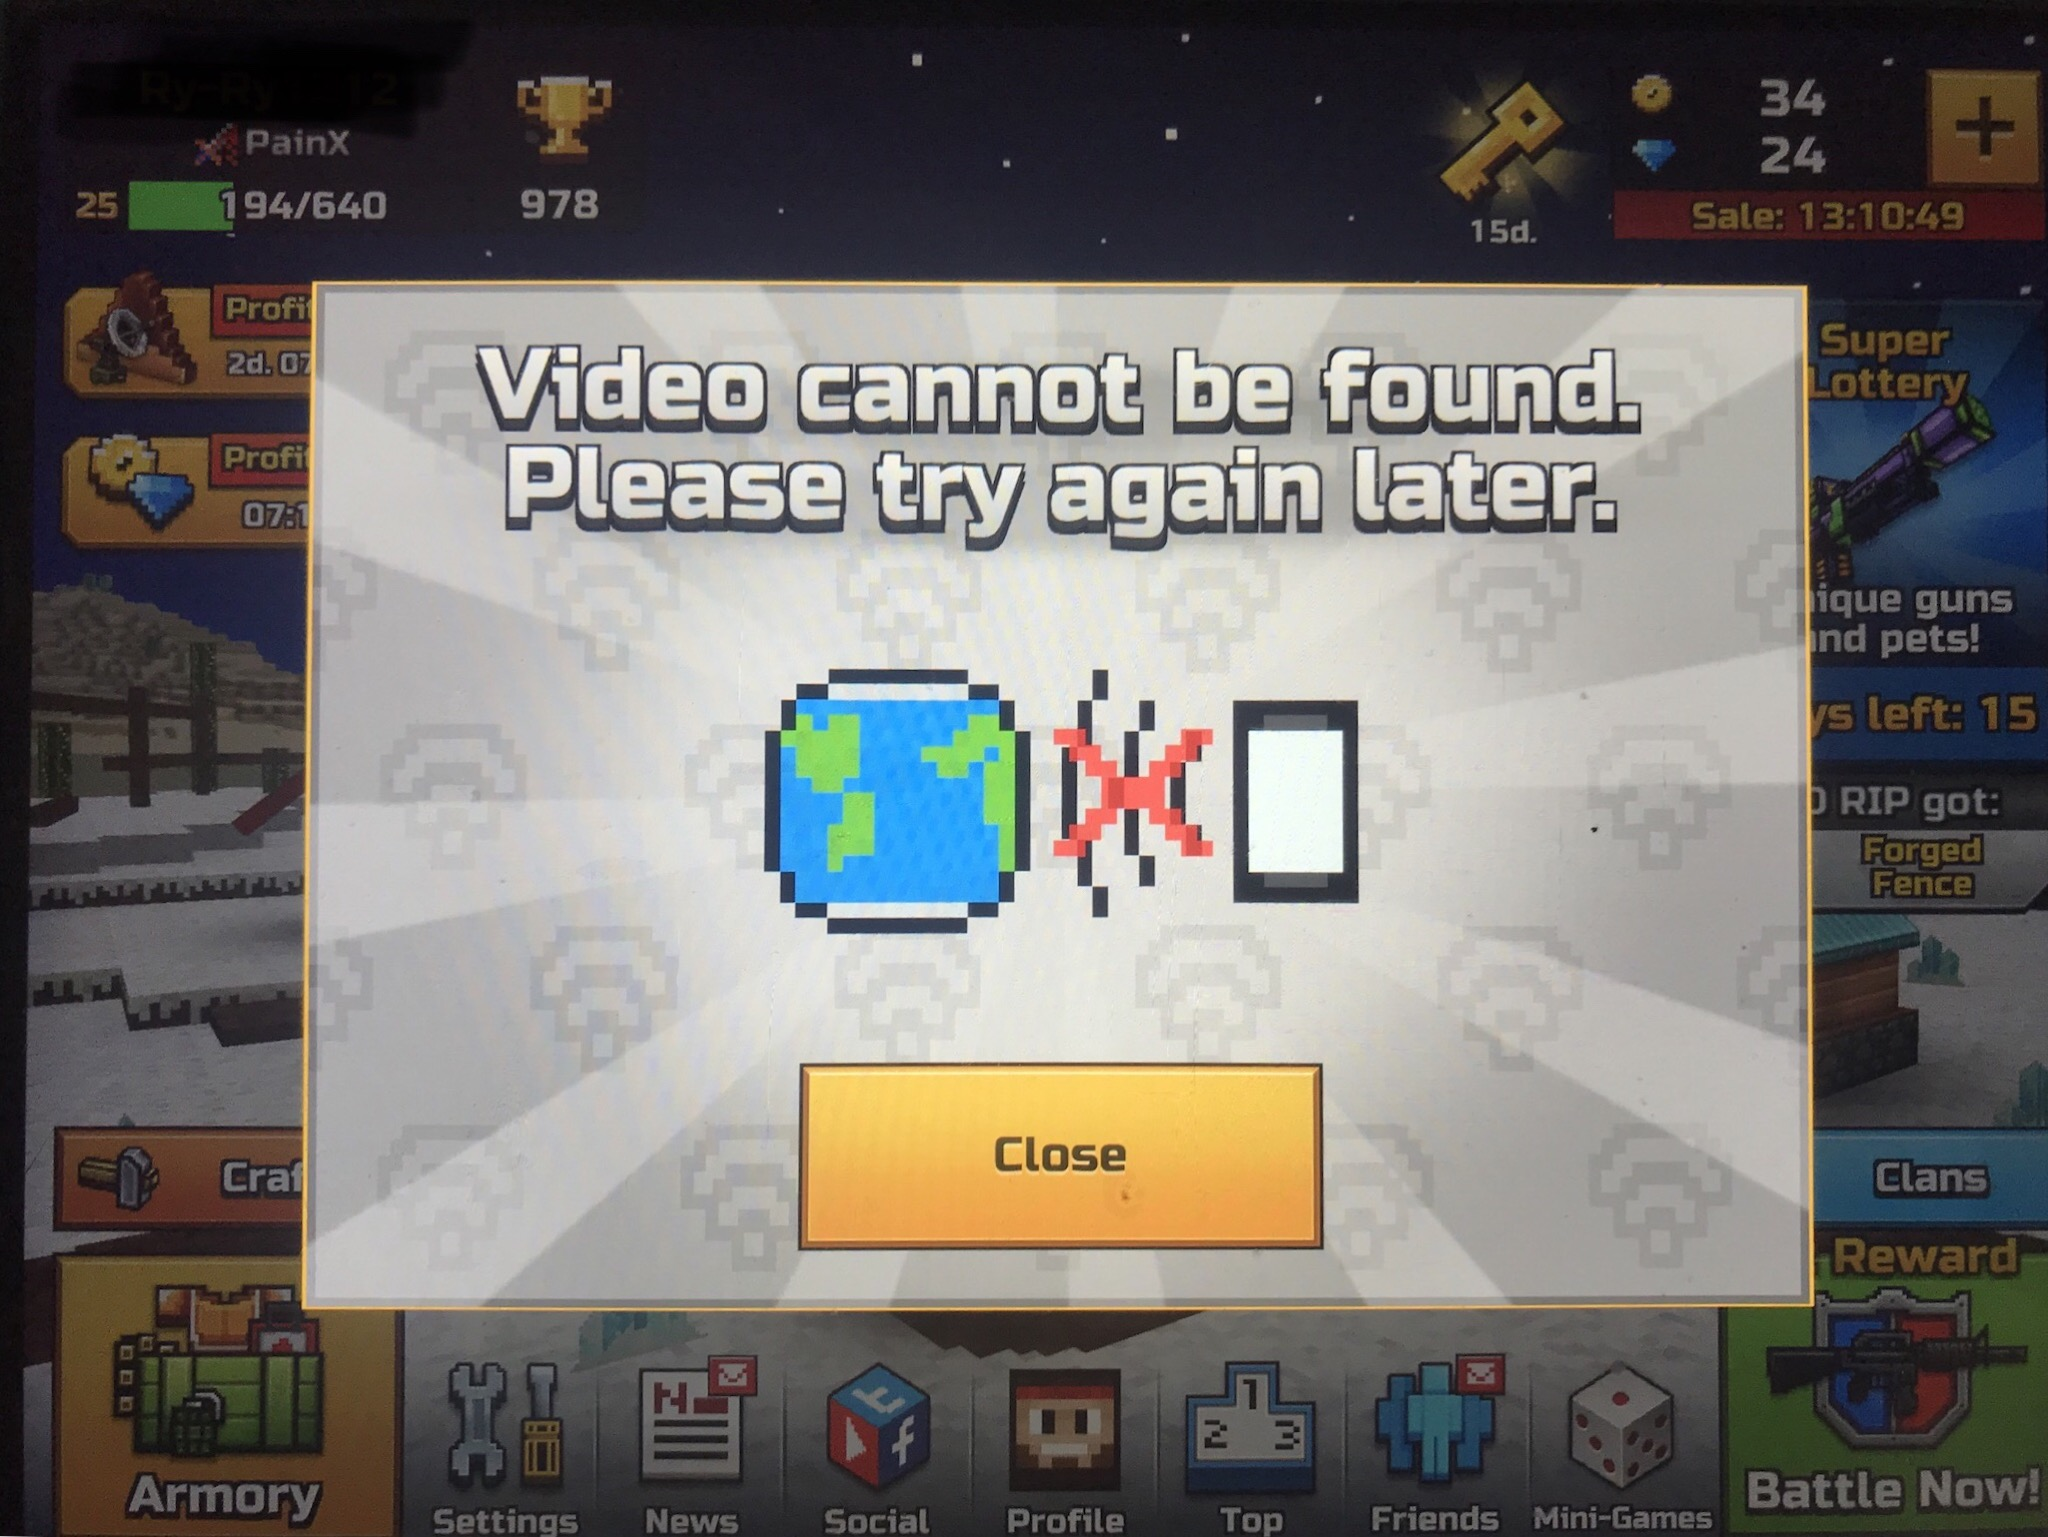 Free Currency Chest Error